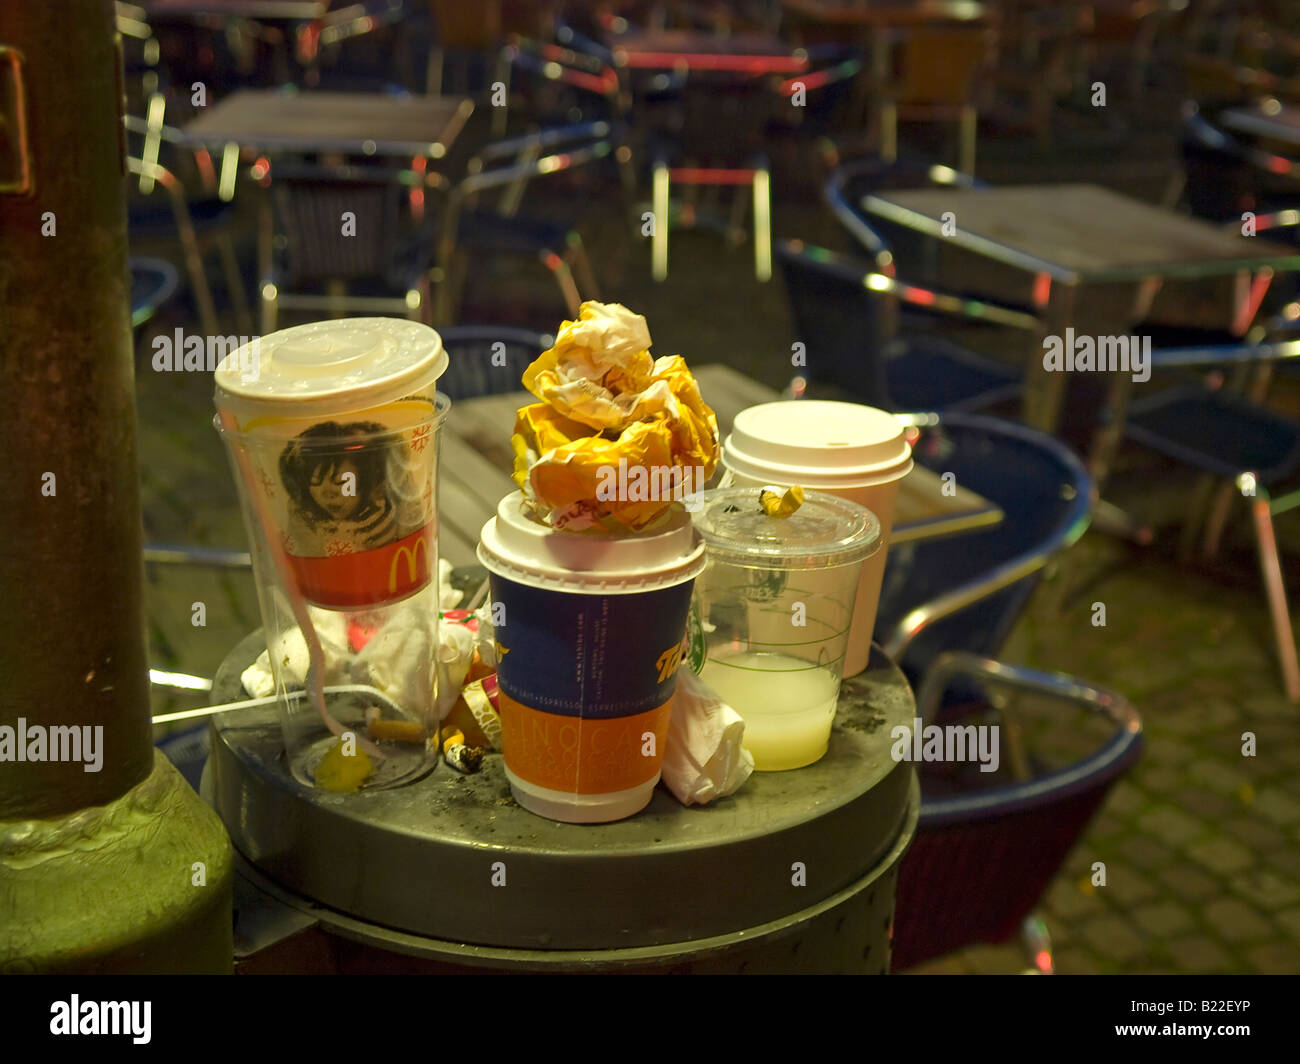 full rubbish bin at a outdoor restaurant on the street at night in Frankfurt am Main Hesse Germany - Stock Image